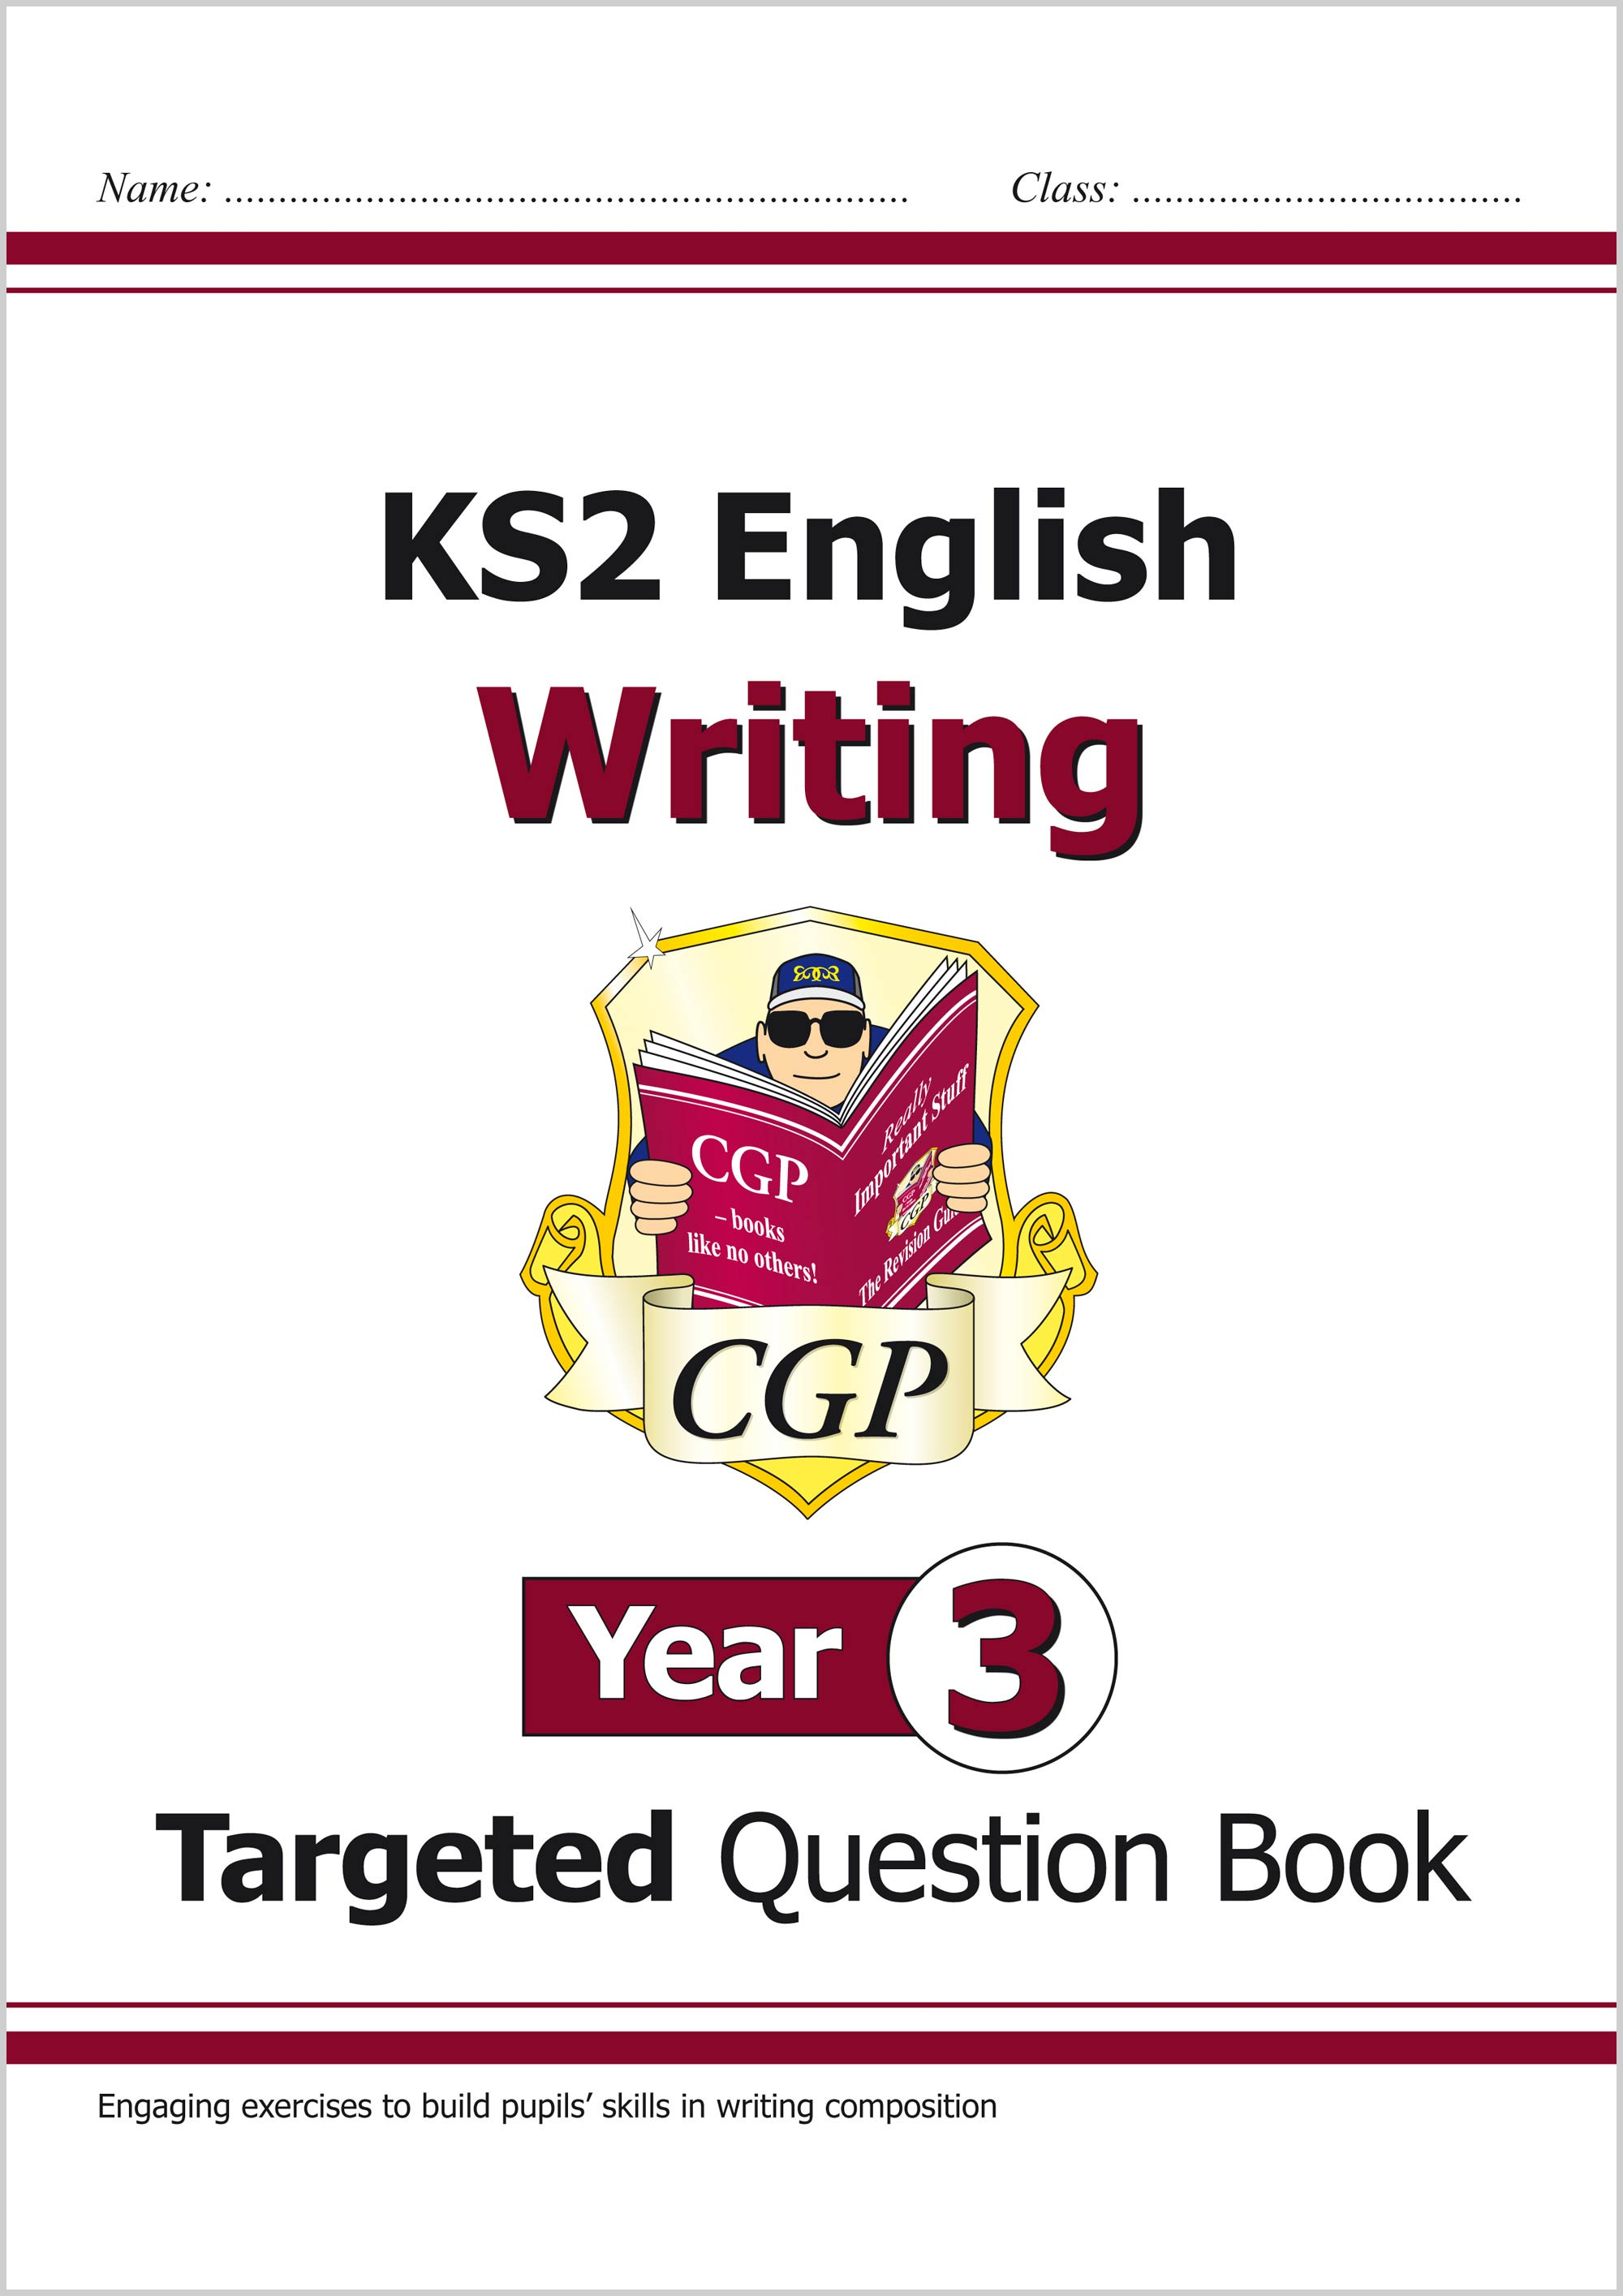 E3WW21 - New KS2 English Writing Targeted Question Book - Year 3